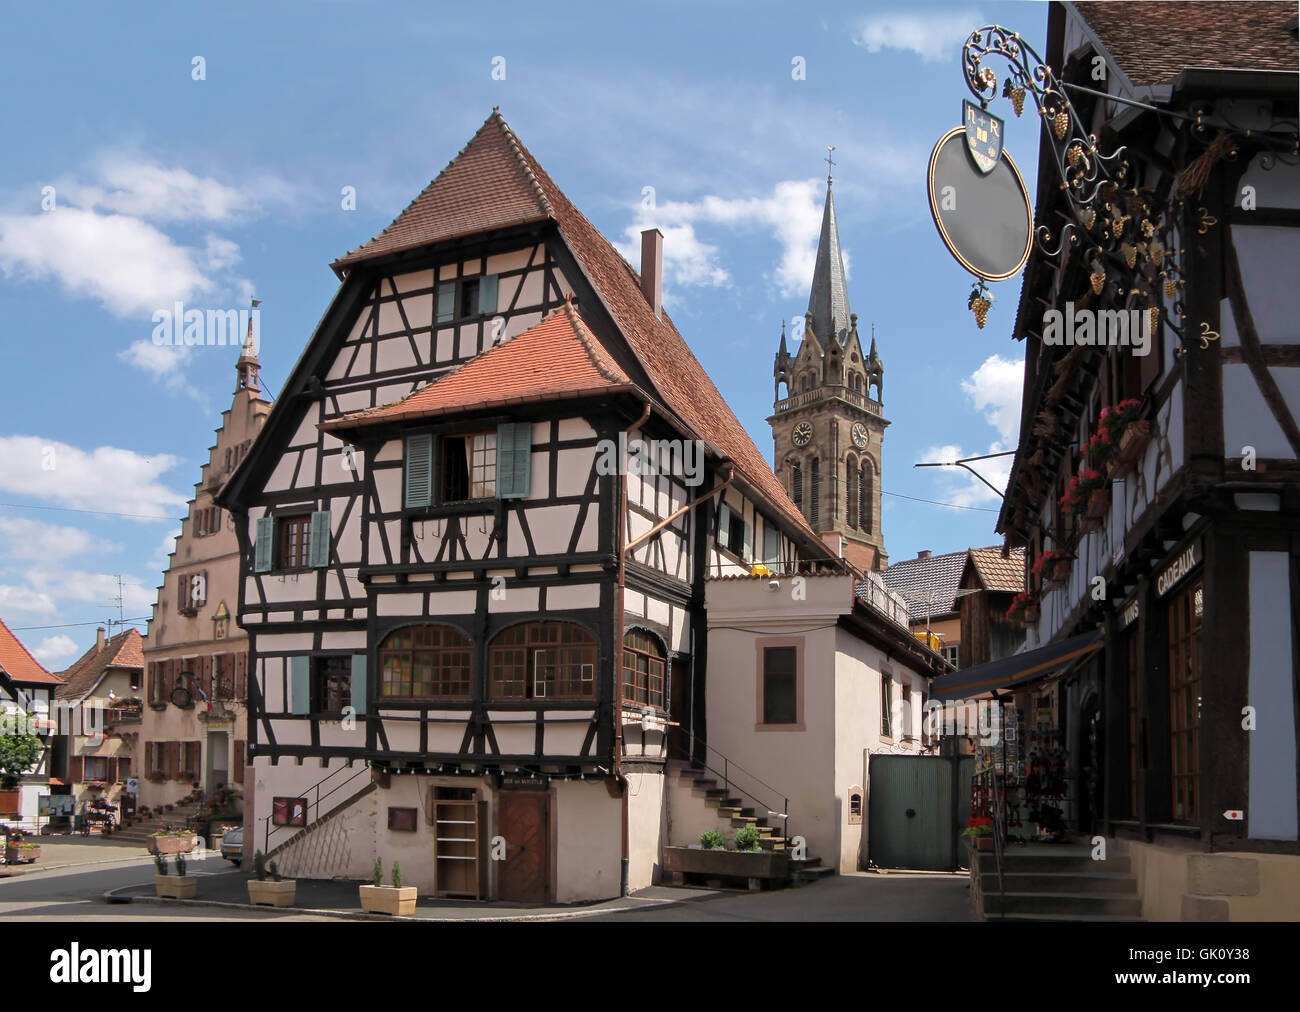 half-timbered houses in the village center Stock Photo